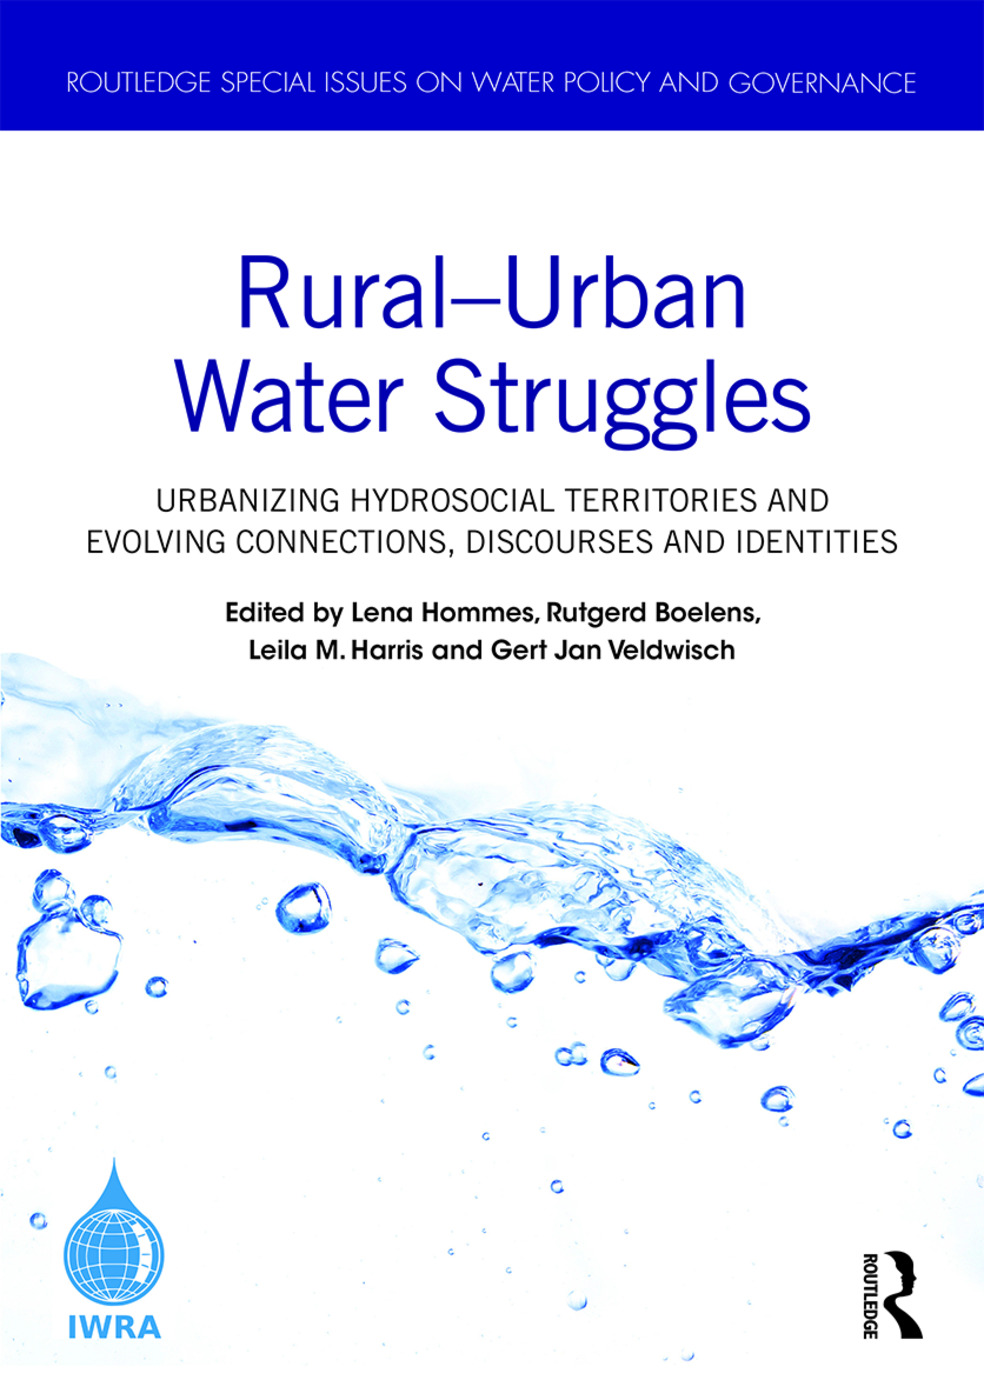 Rural–Urban Water Struggles: Urbanizing Hydrosocial Territories and Evolving Connections, Discourses and Identities, 1st Edition (Hardback) book cover